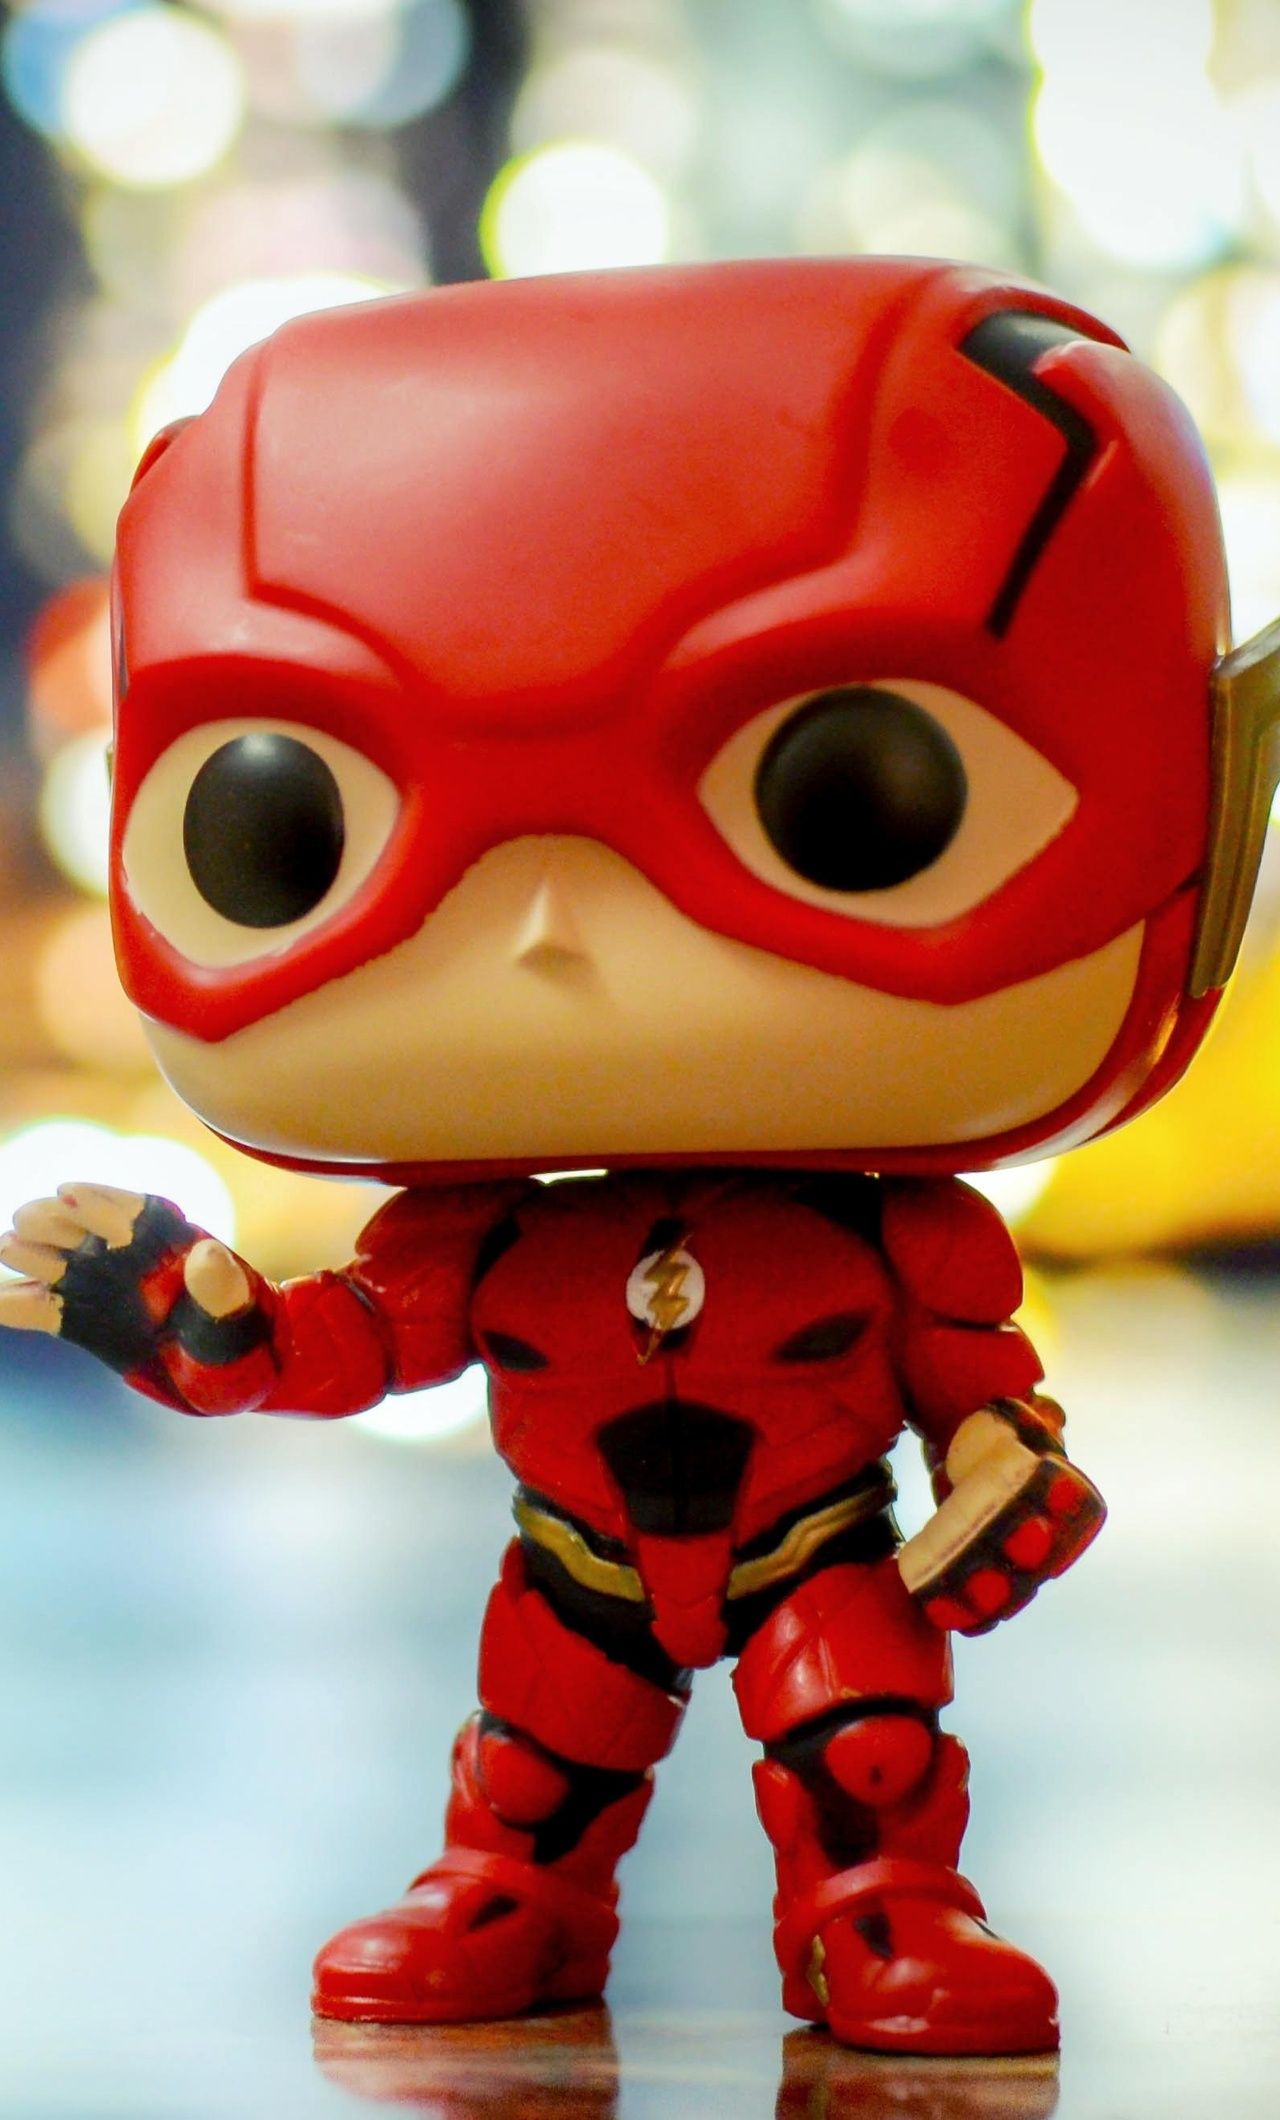 1280x2120 justice league flash funko pop iphone 6 hd 4k wallpapers images backgrounds photos - Funko pop wallpaper ...